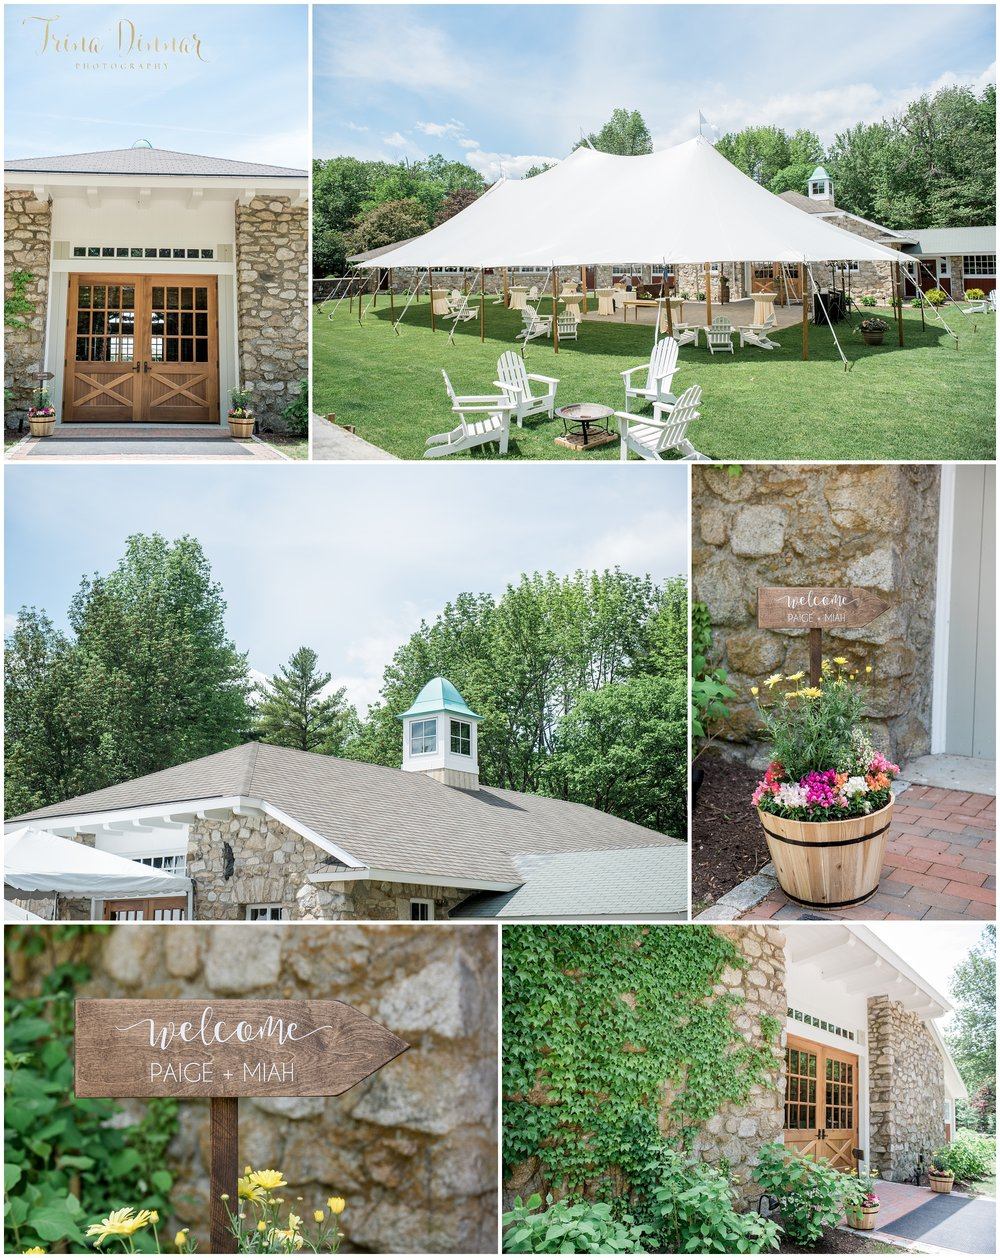 The Stone Barn Maine Wedding at St. Joseph's College